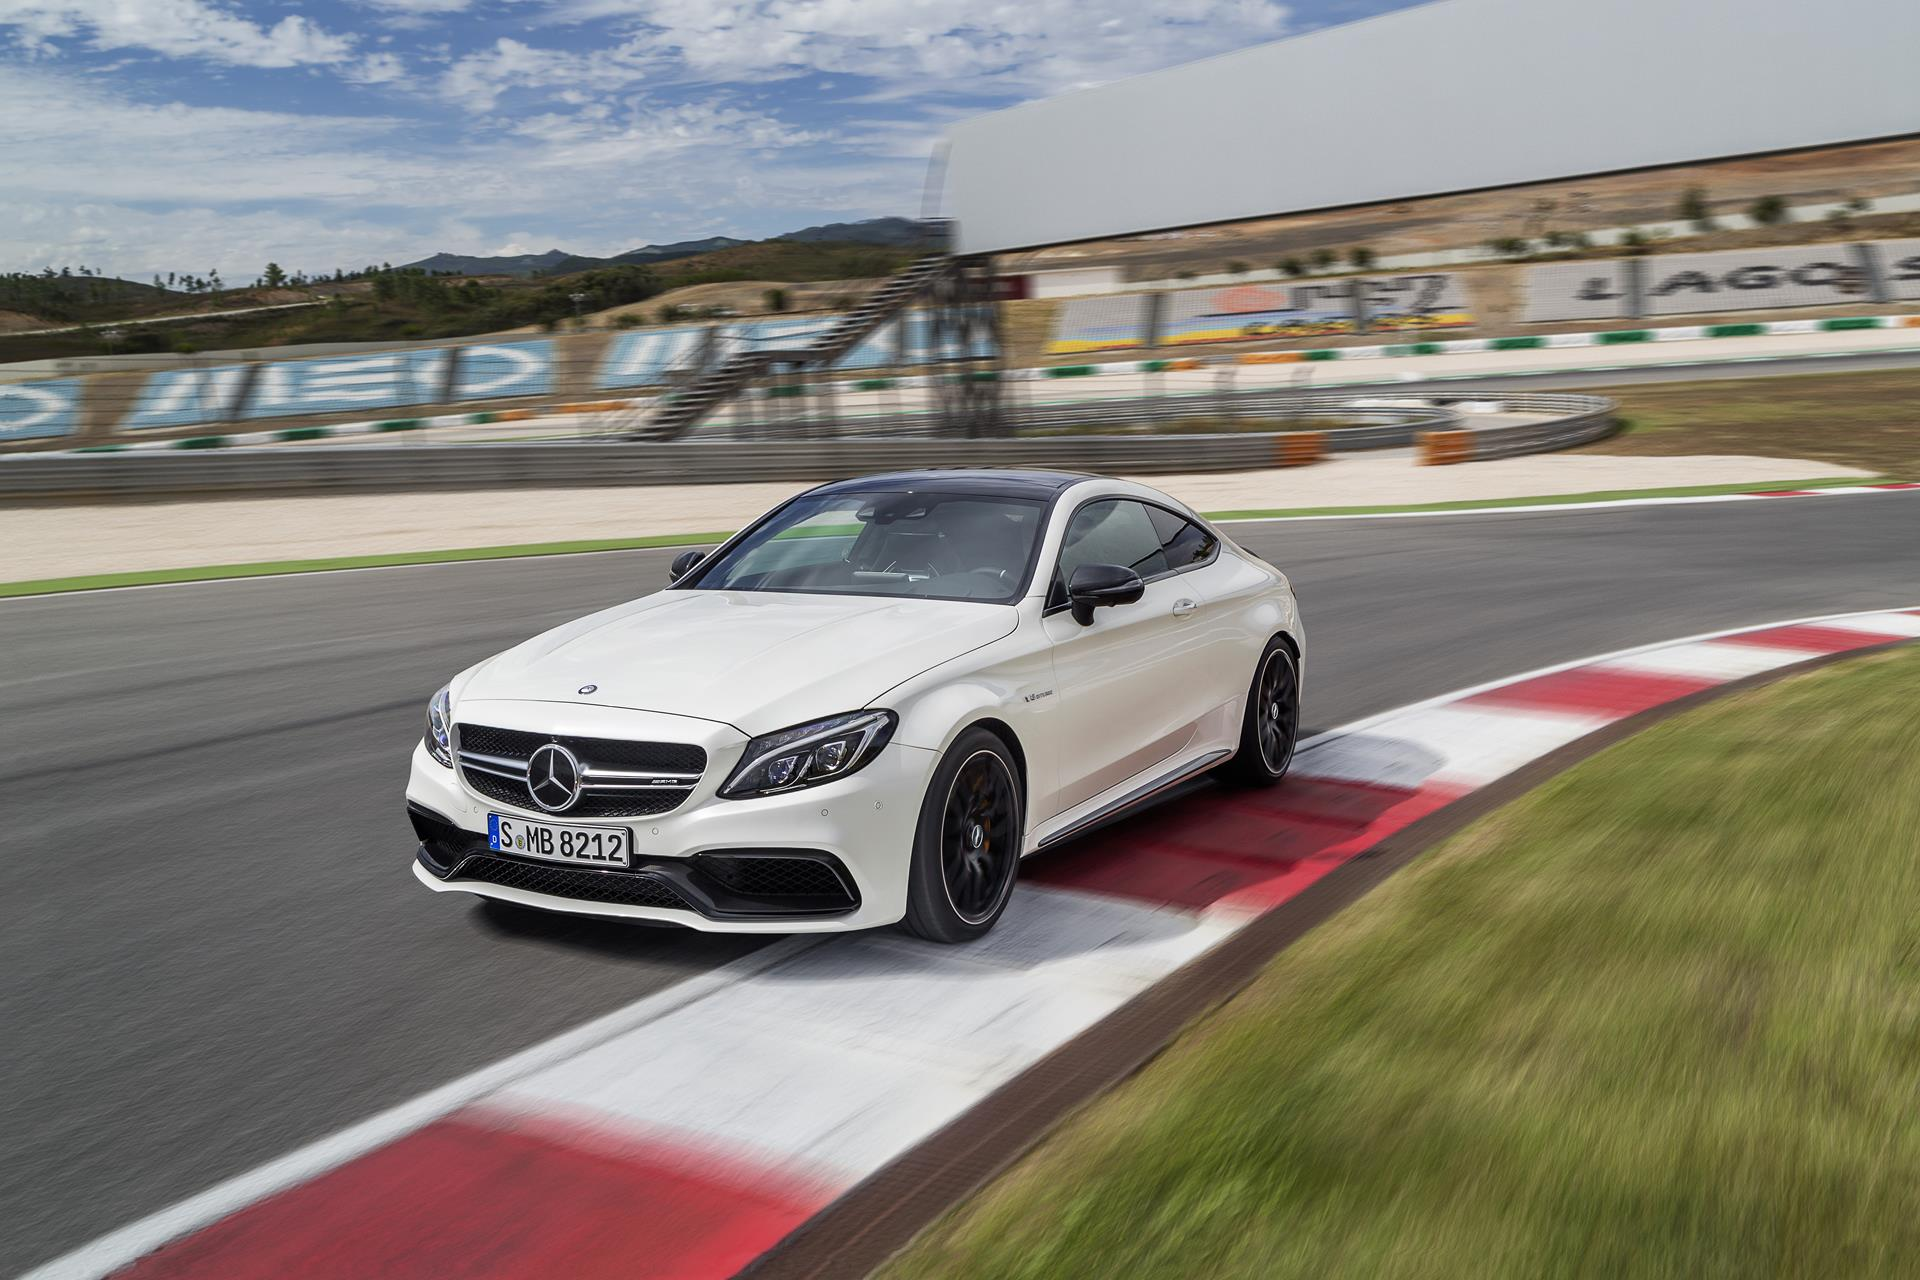 2017 mercedes benz c63 amg news and information for Mercedes benz amg hatchback price